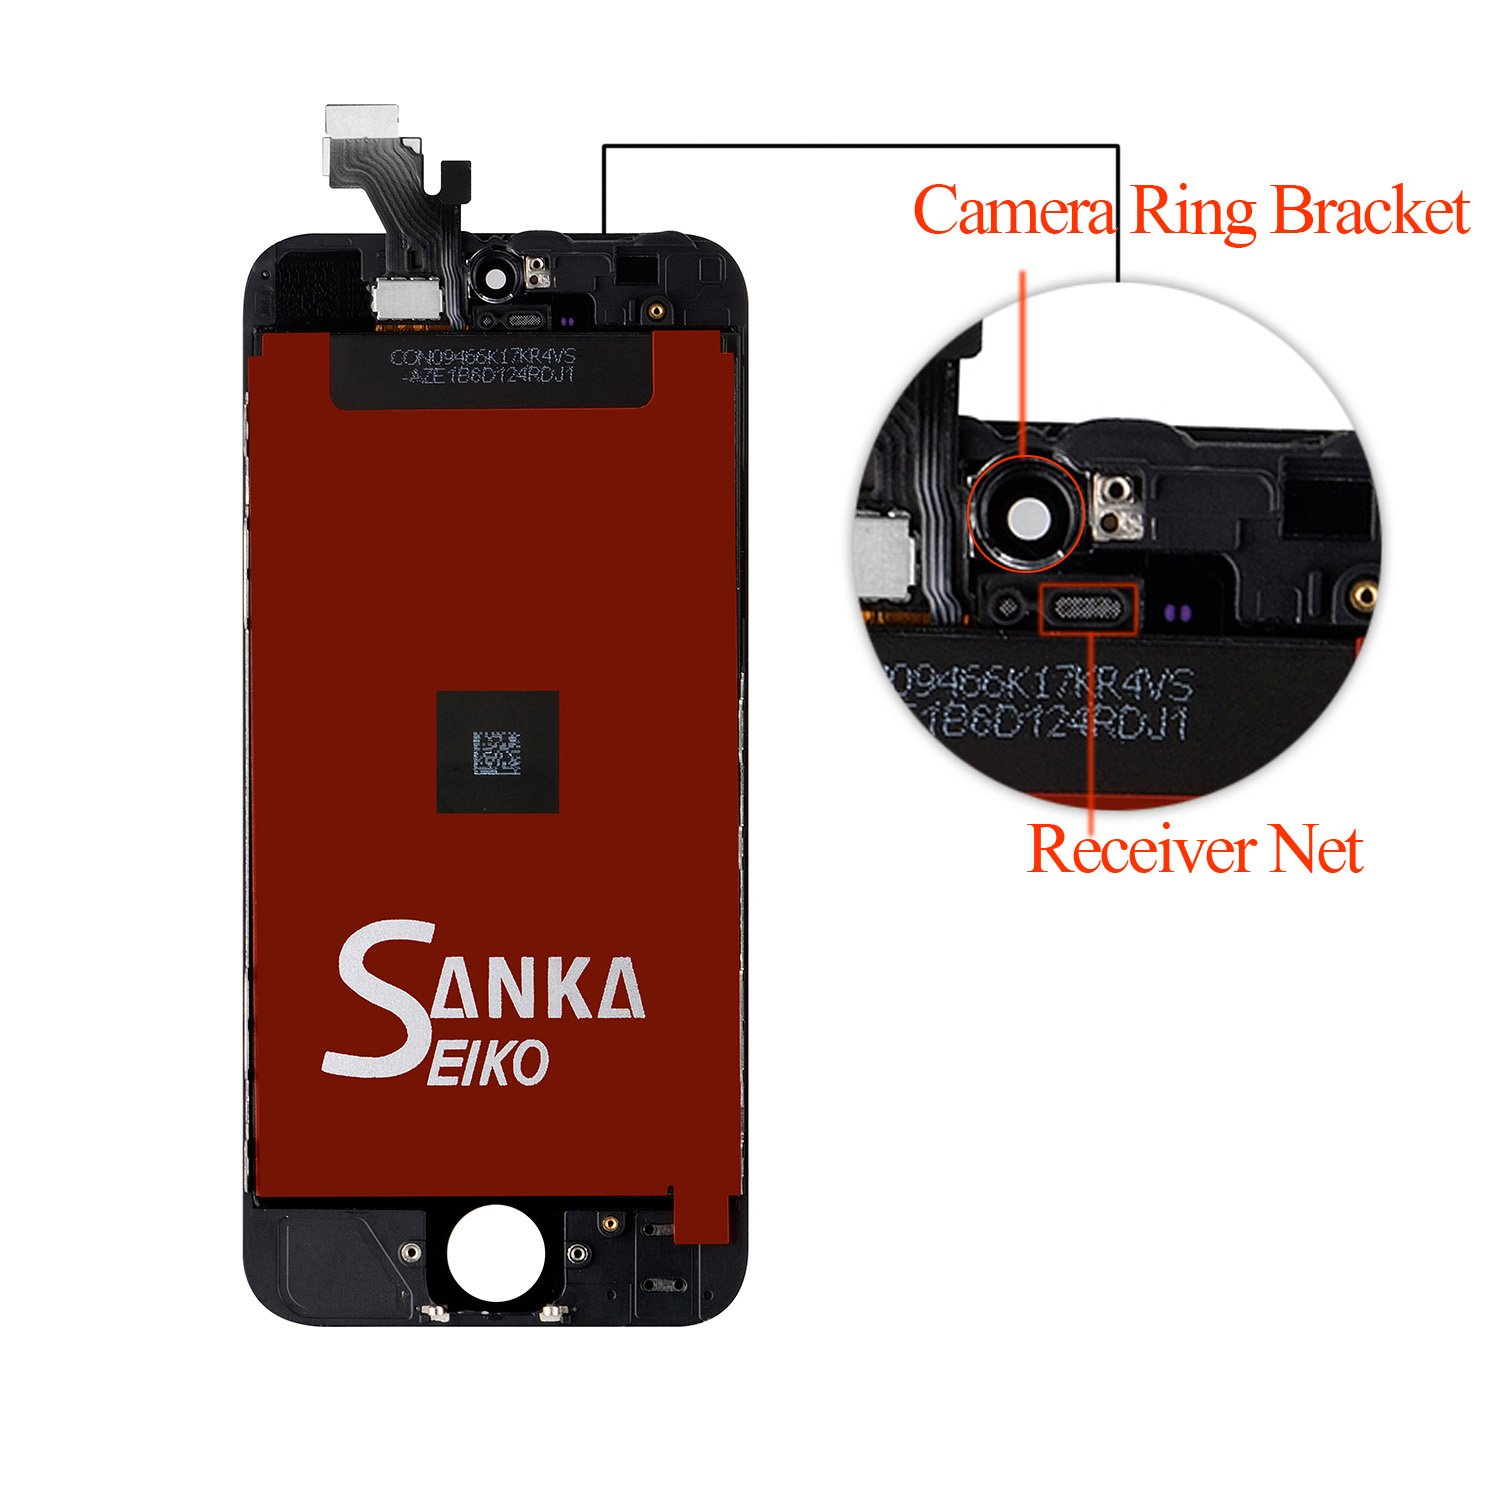 SANKA iPhone 5C LCD Screen Replacement, Digitizer Display Retina Touch Screen Glass Frame Assembly for iPhone 5C - Black (Free Tools Included) by SANKA (Image #3)